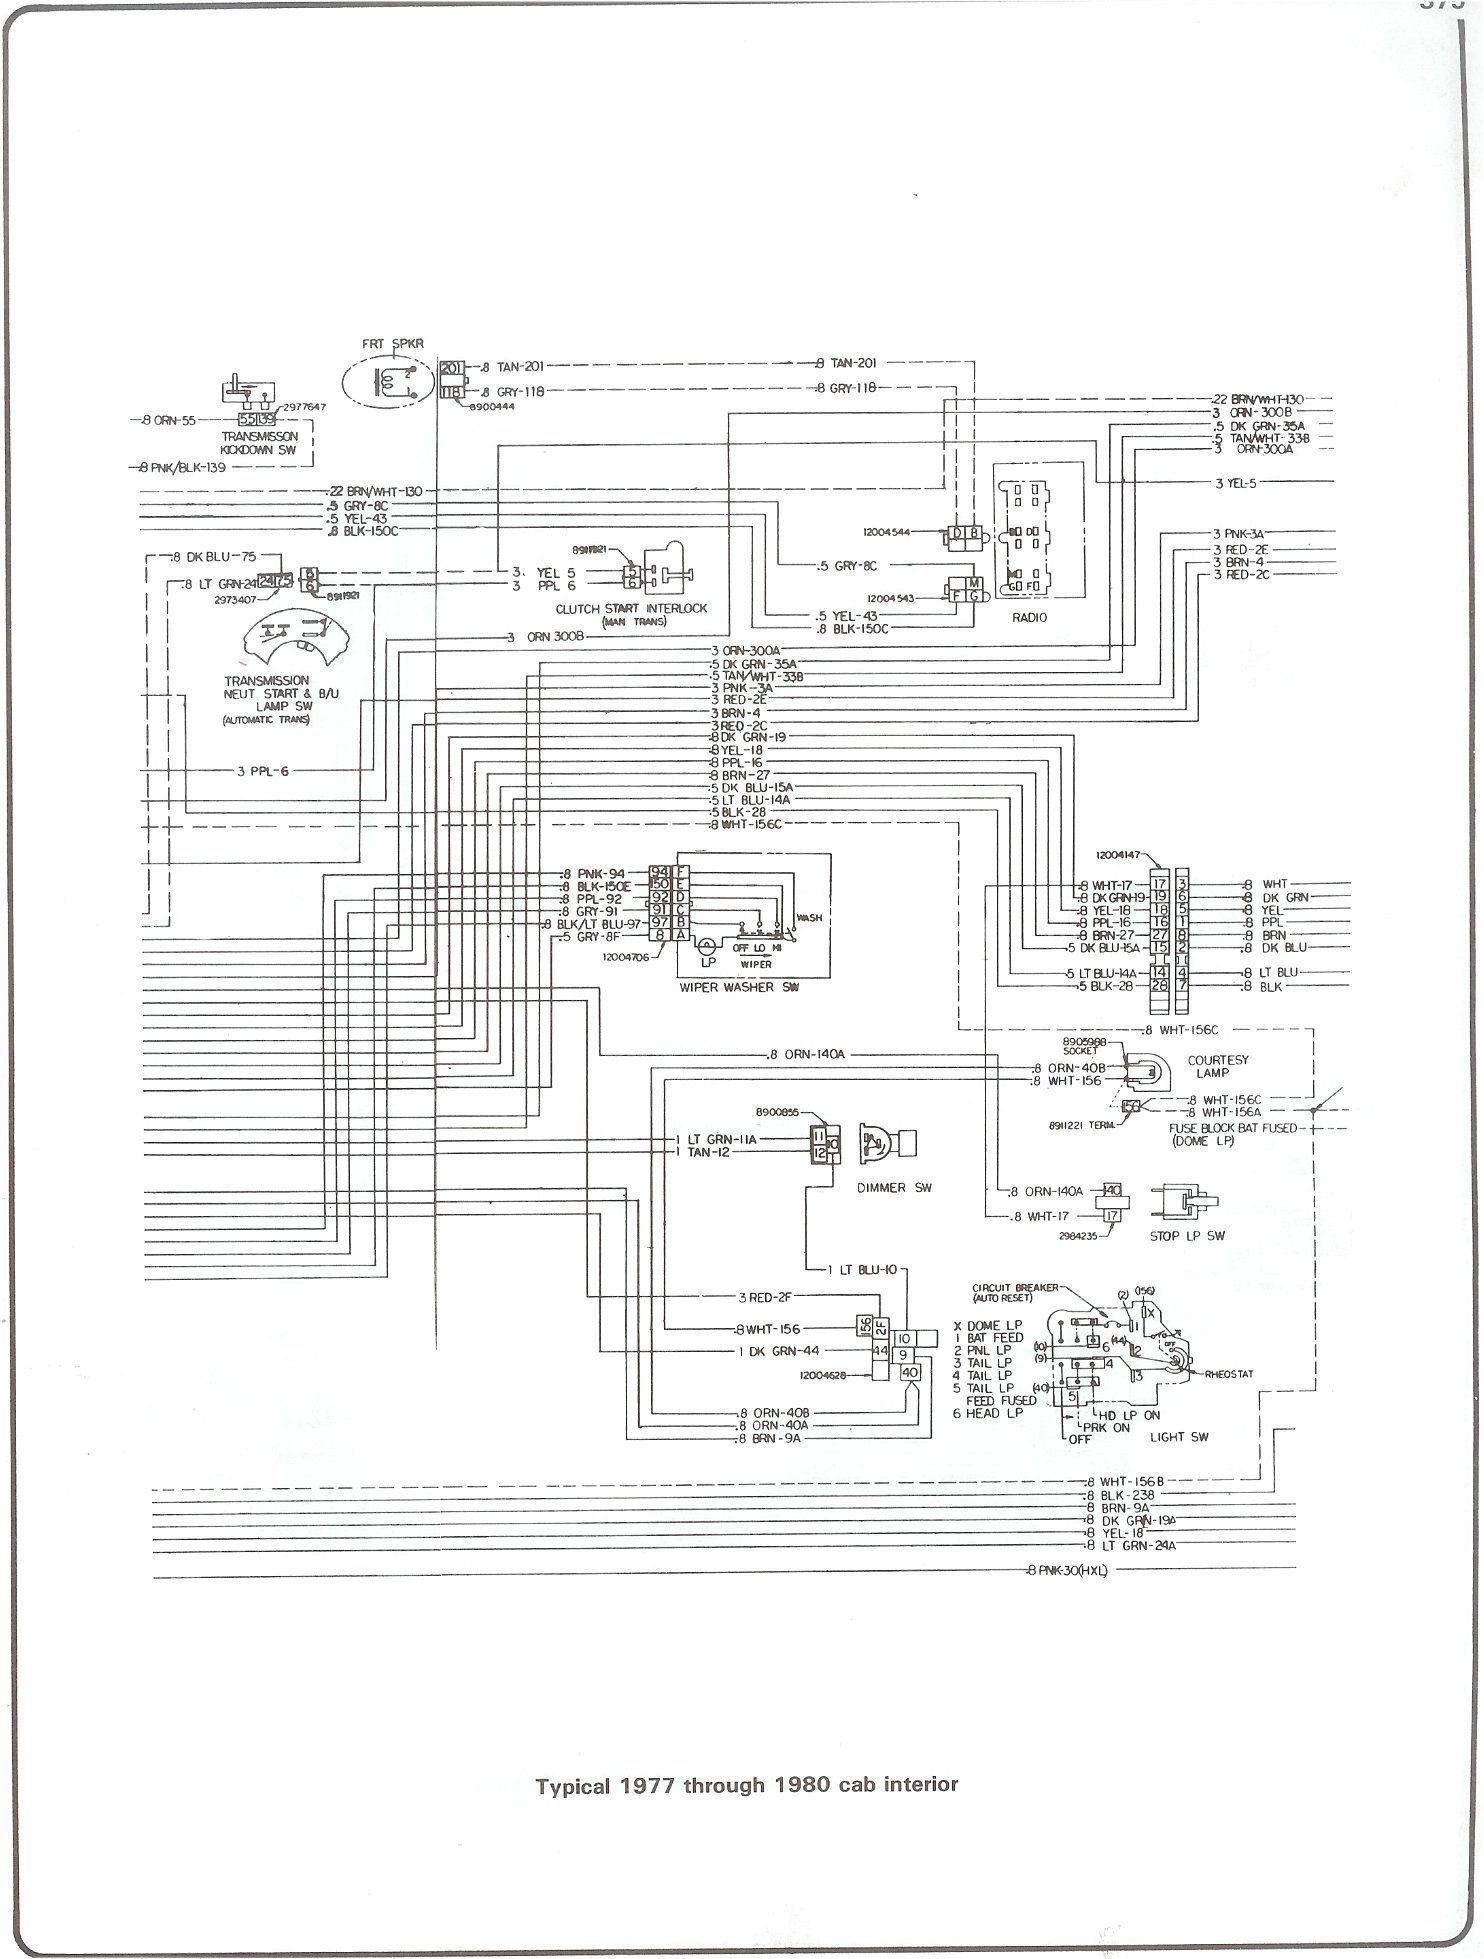 1978 Chevy Pickup Wiring Schematic Free Diagram For You Toyota Hilux Engine Complete 73 87 Diagrams Rh Forum 87chevytrucks Com 1993 Emg